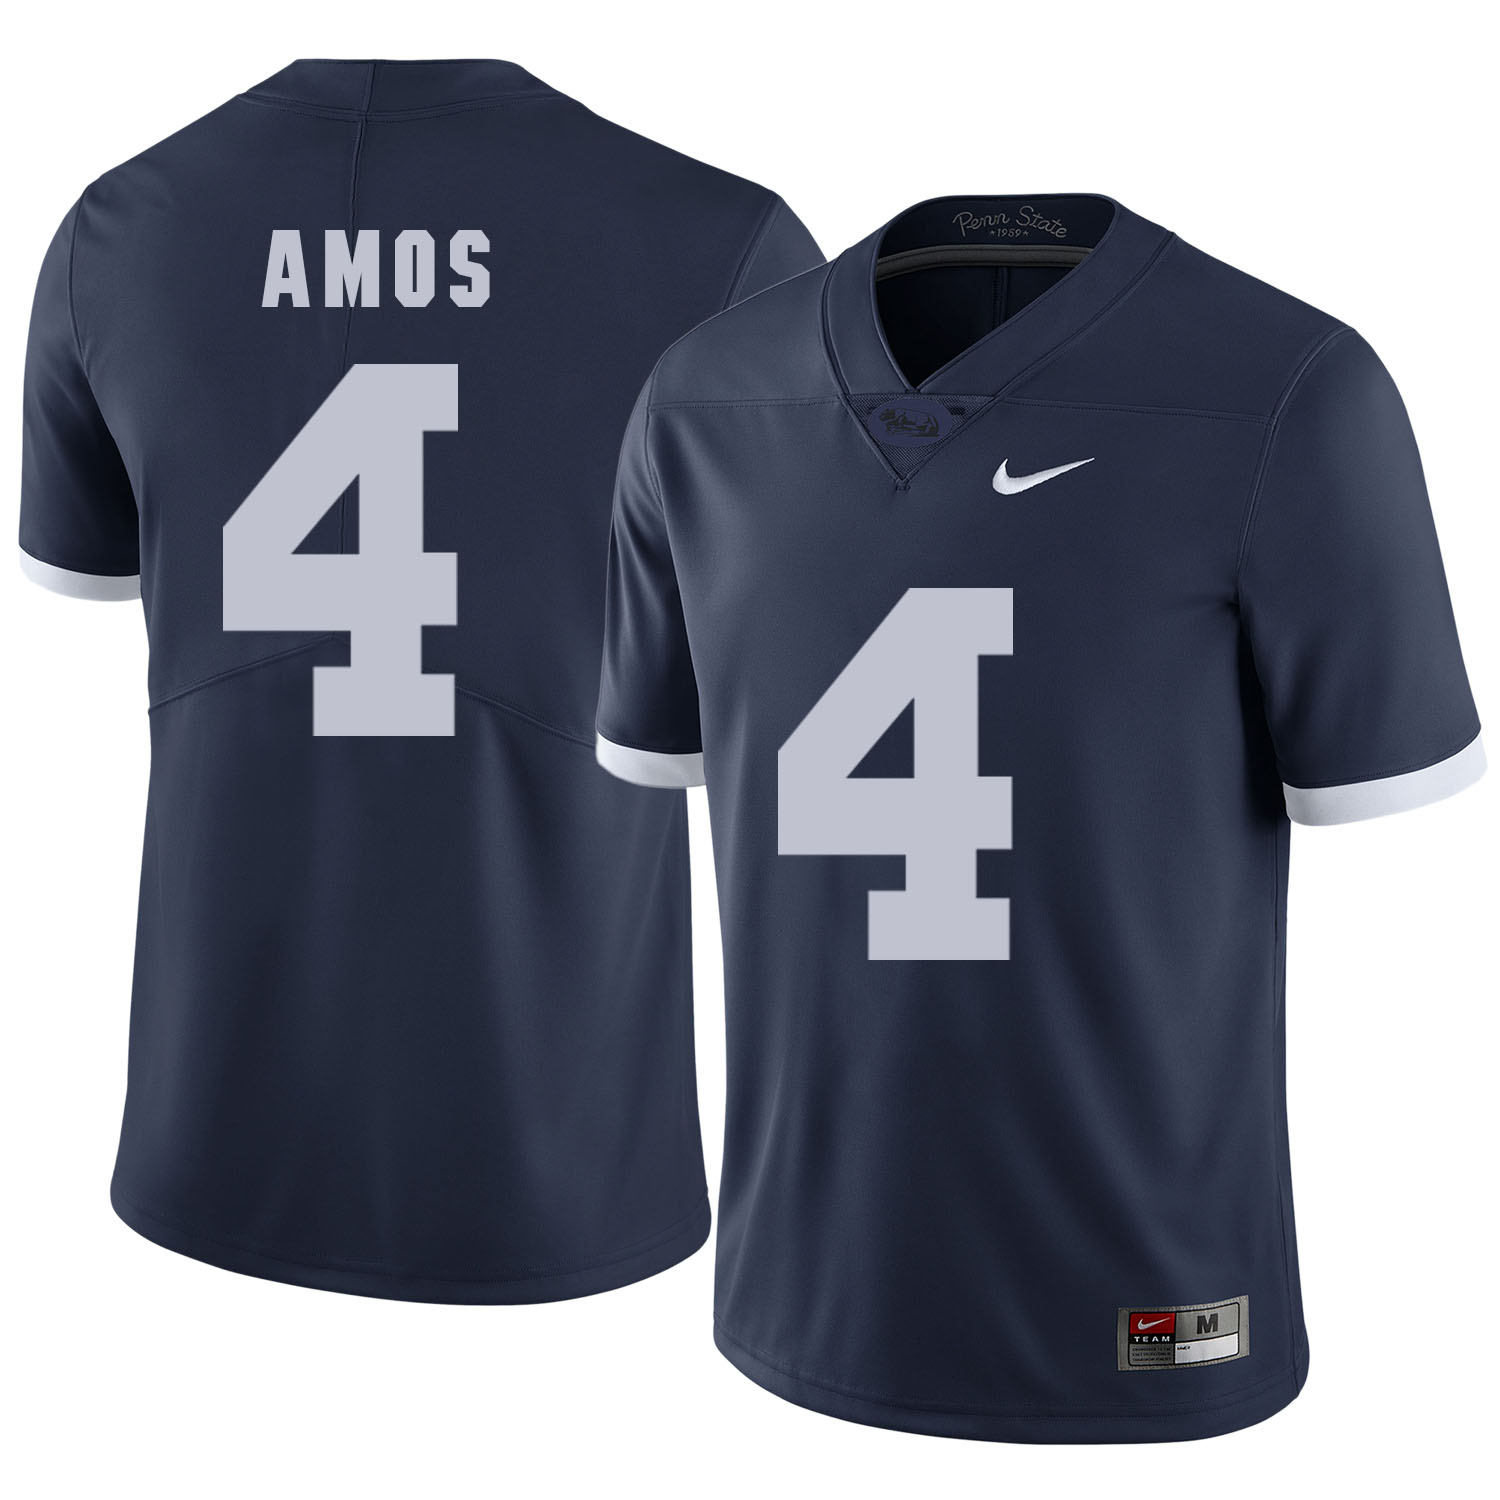 Penn State Nittany Lions 4 Adrian Amos Navy College Football Jersey